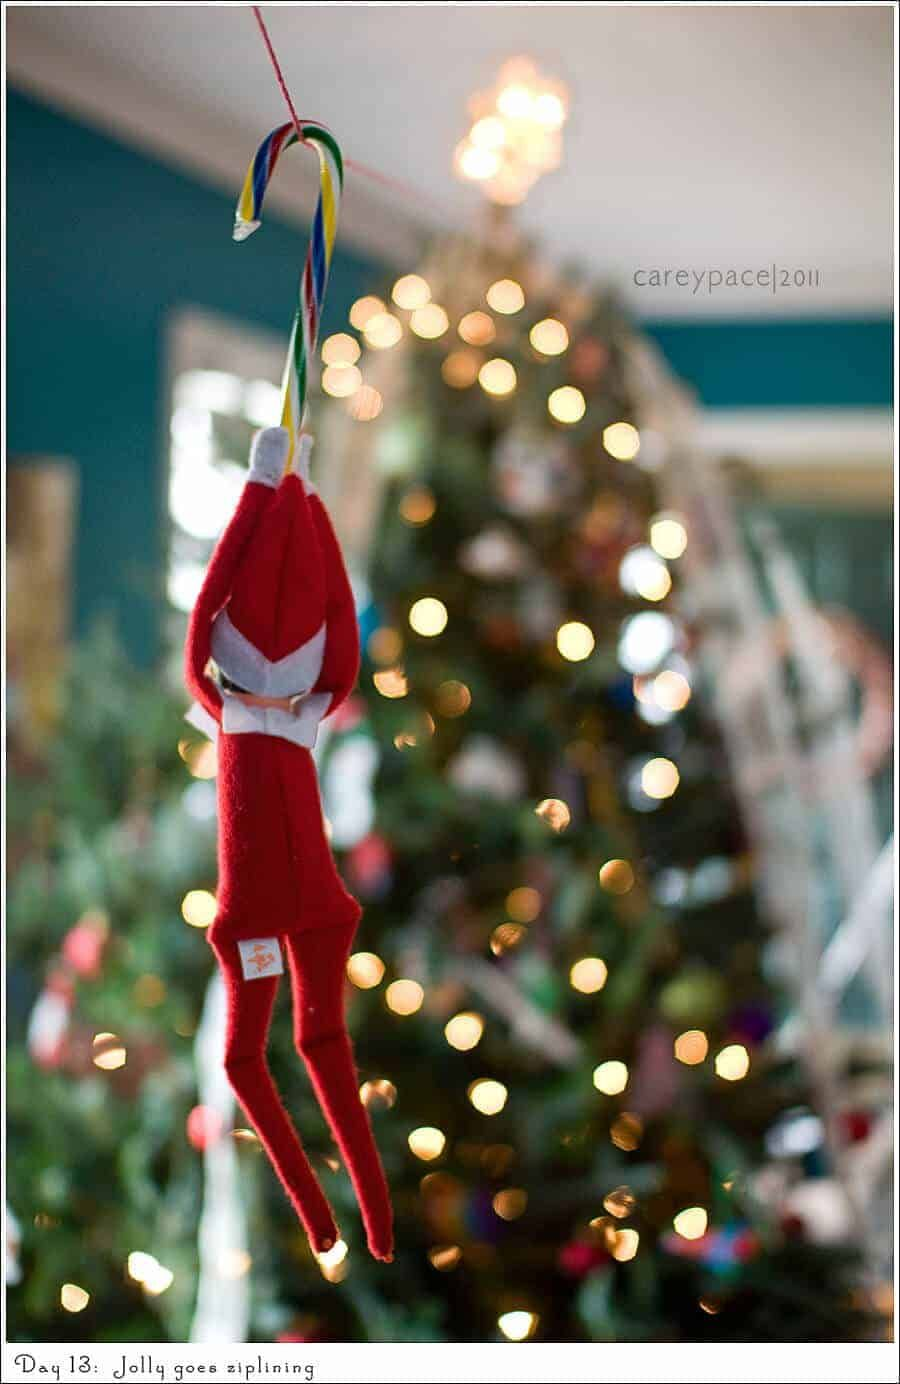 Now Merry Christmas 2020 Zip elf on a zipline in 2020 | Awesome elf on the shelf ideas, Elf on